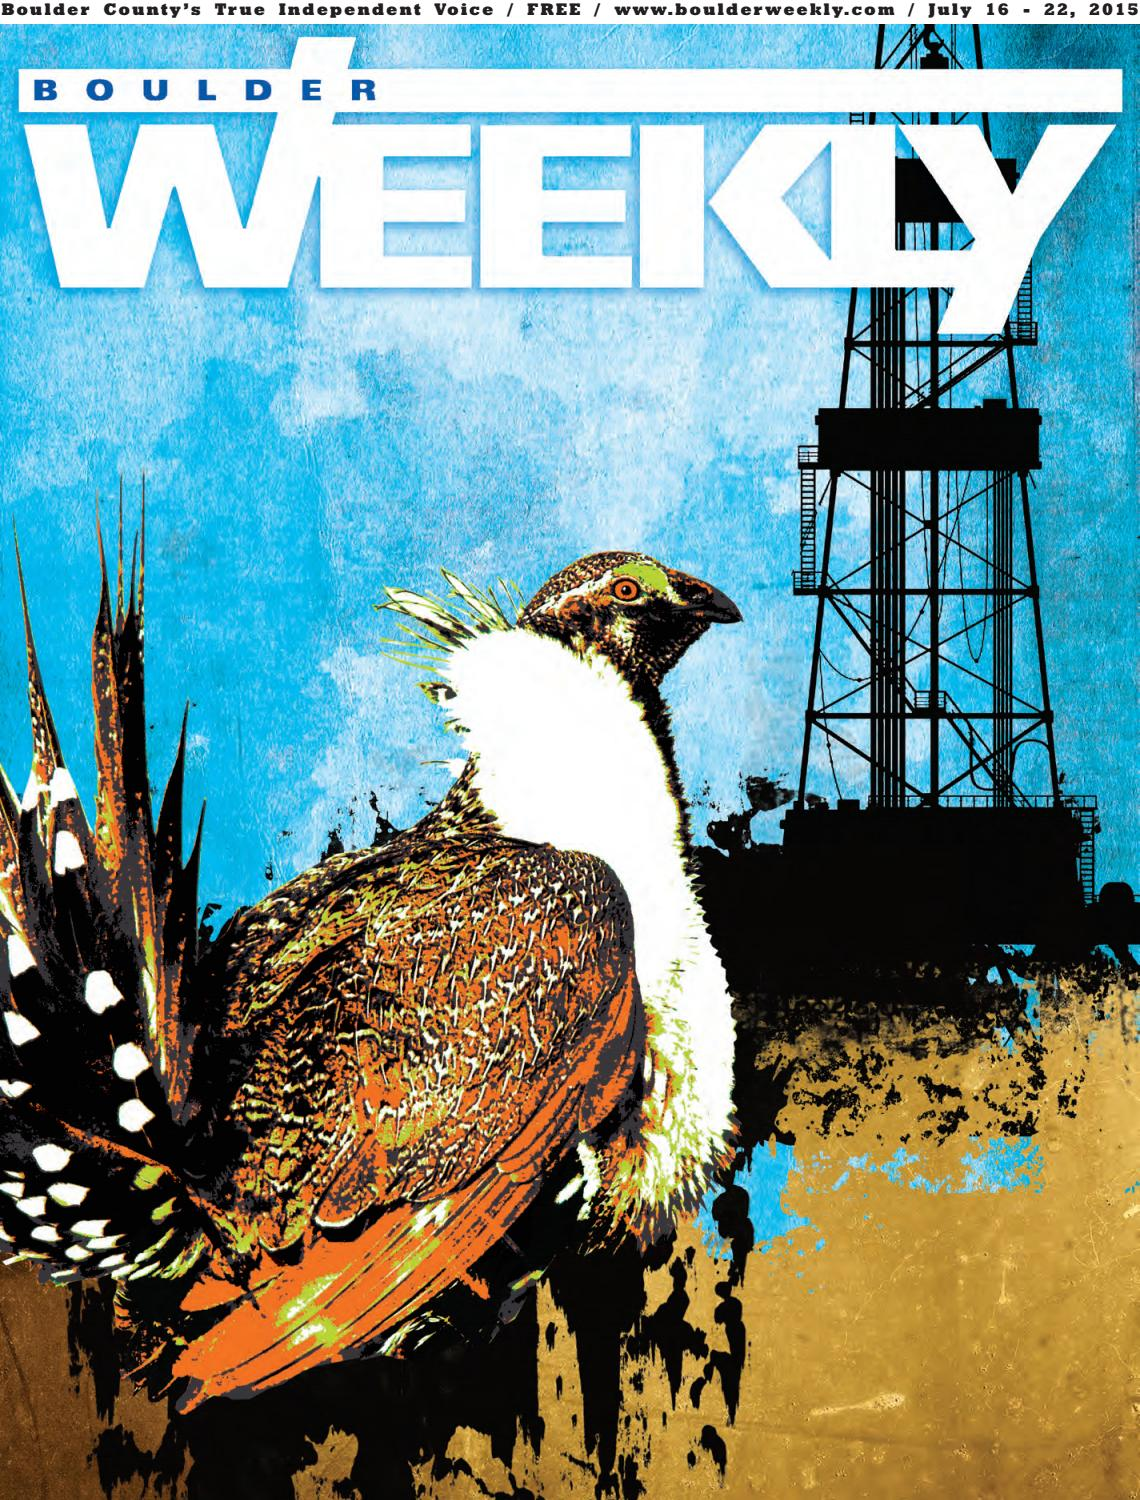 7 16 15 boulder weekly by Boulder Weekly - issuu